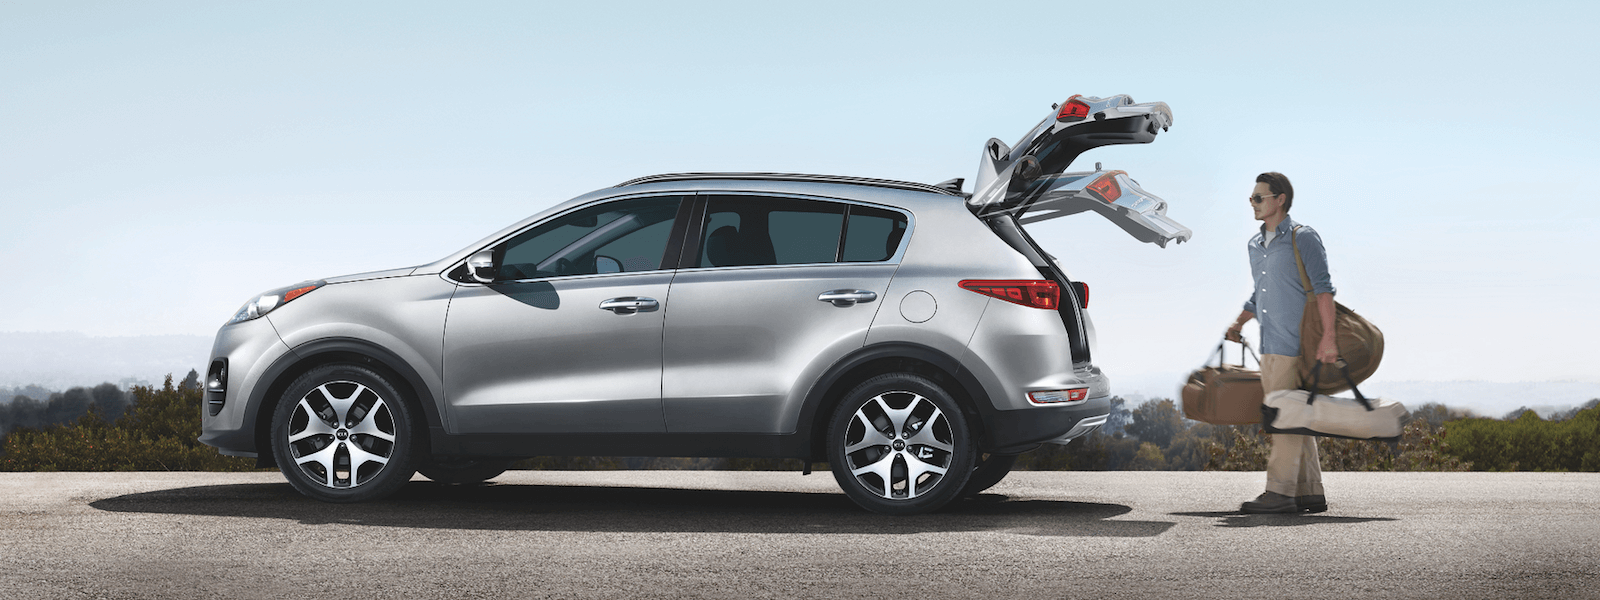 A man carrying bags, and putting them into the opening trunk of his 2019 Kia Sportage